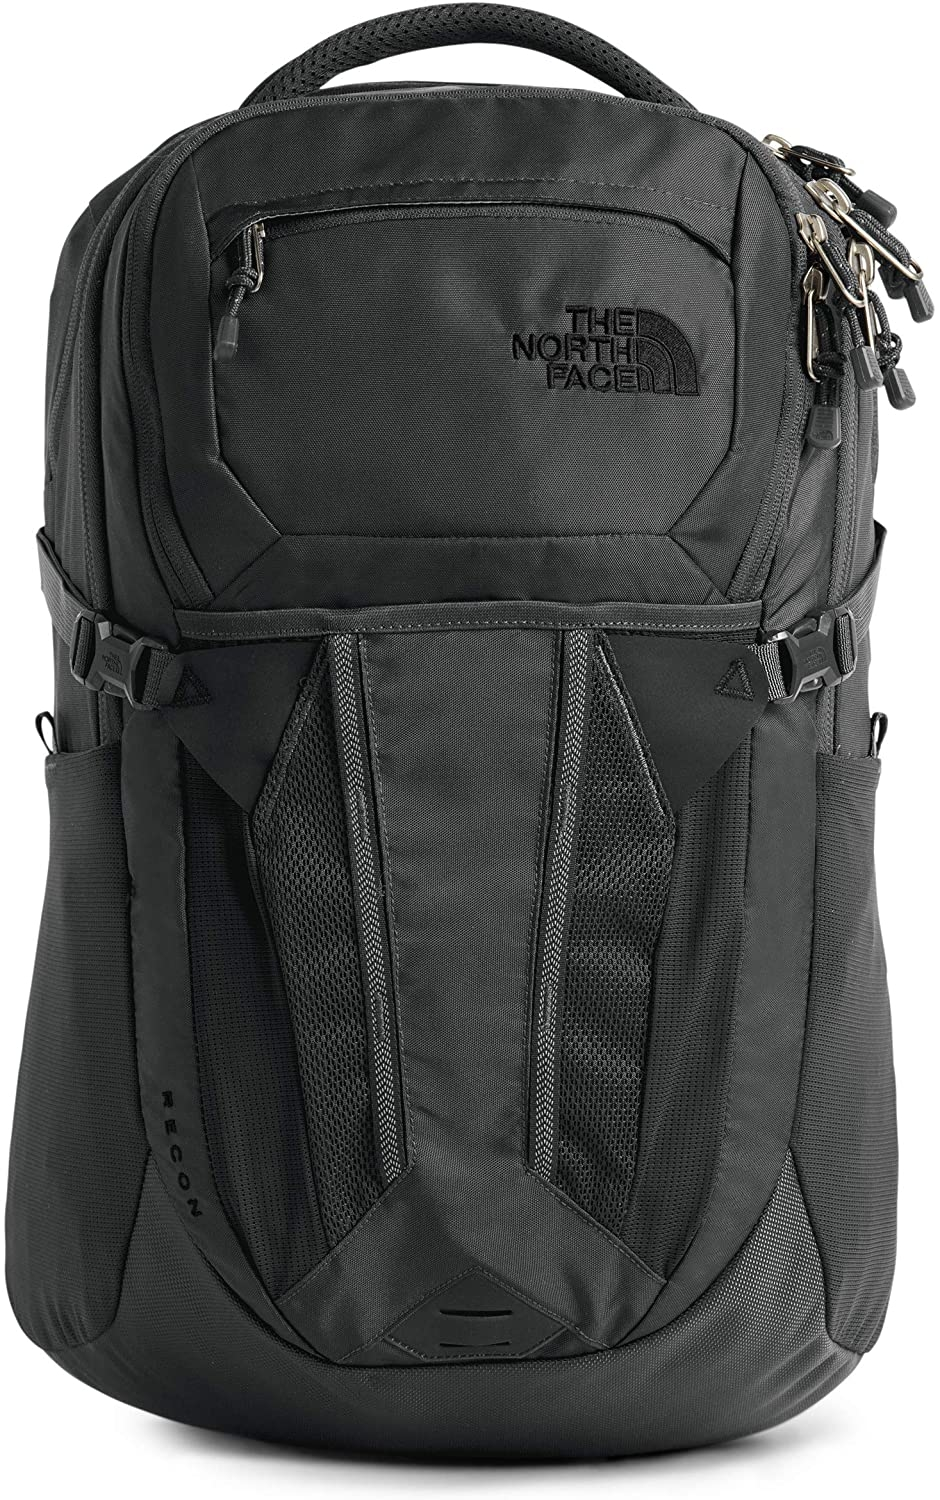 featured image north face recon backpack